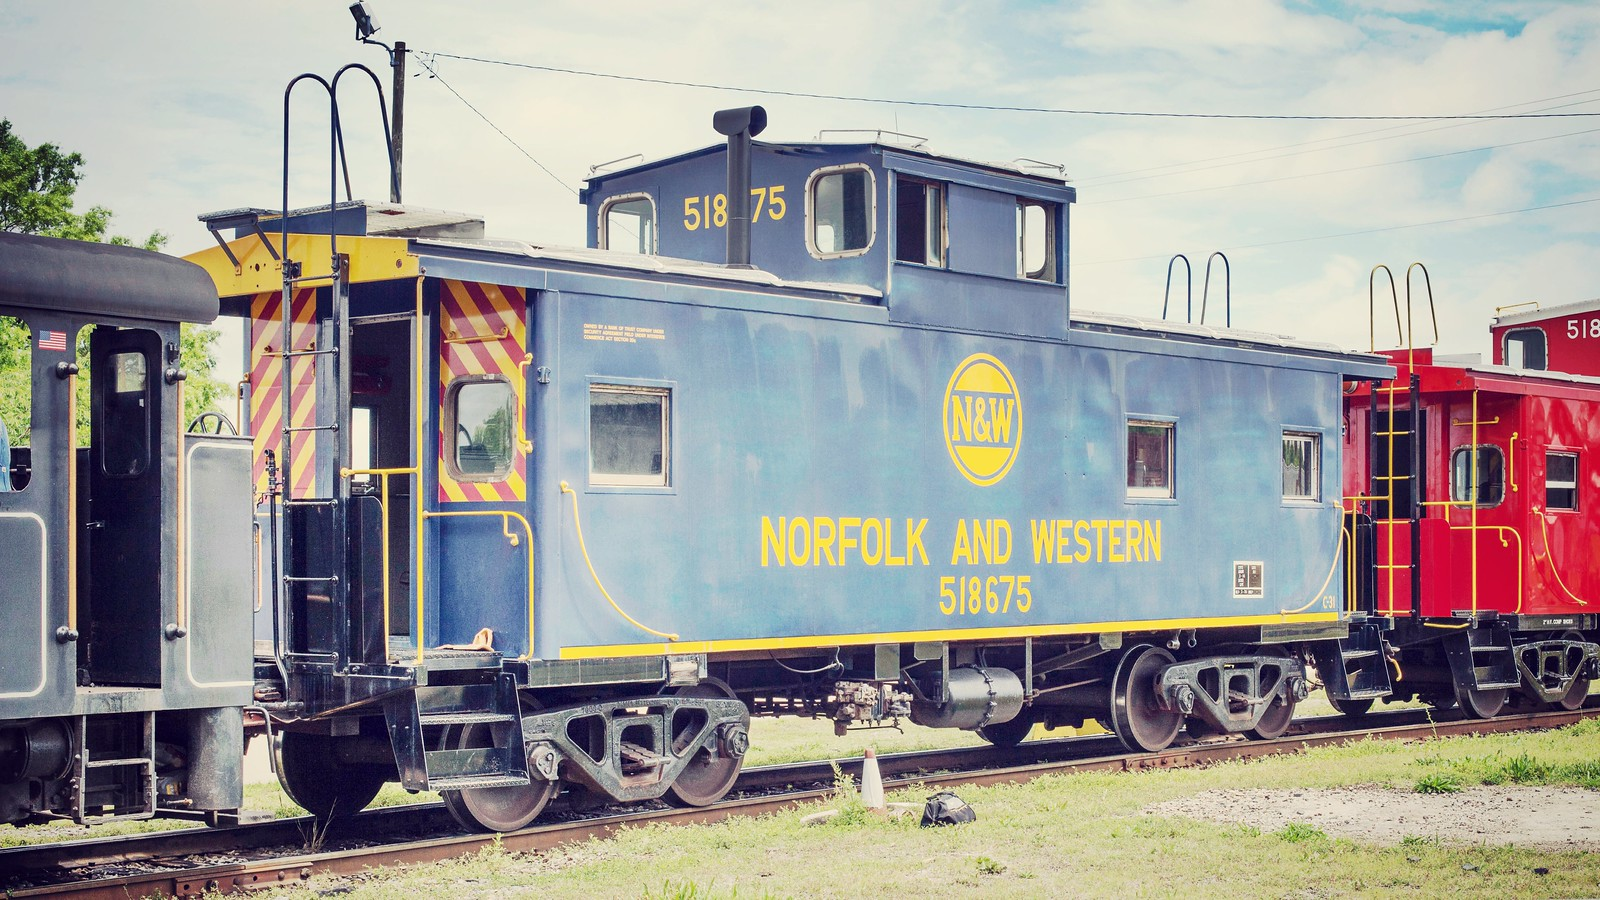 The North Carolina Transportation Museum (NCTM) offered Caboose rides around the campus throughout the day of May 13, 2017 in celebration of National Train Day - N&W Caboose 518675 was first in line.